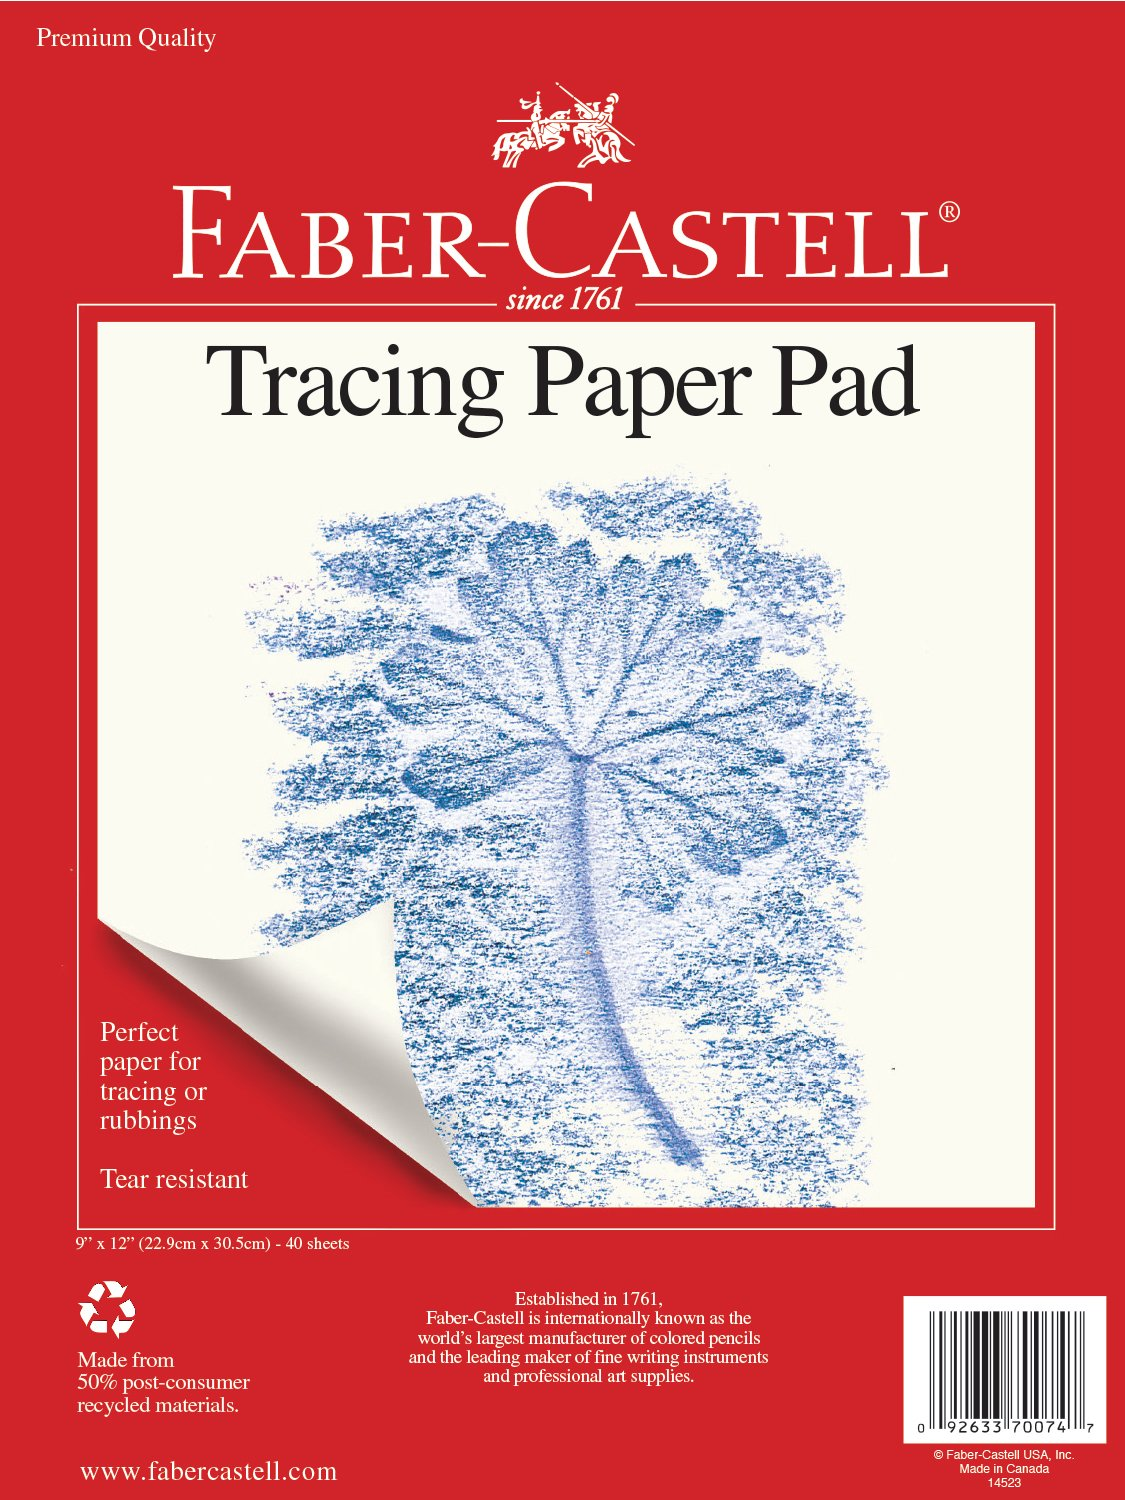 Faber-Castell Construction Paper Pad Multi-Colored Craft Paper 60 Sheets 9 x 12